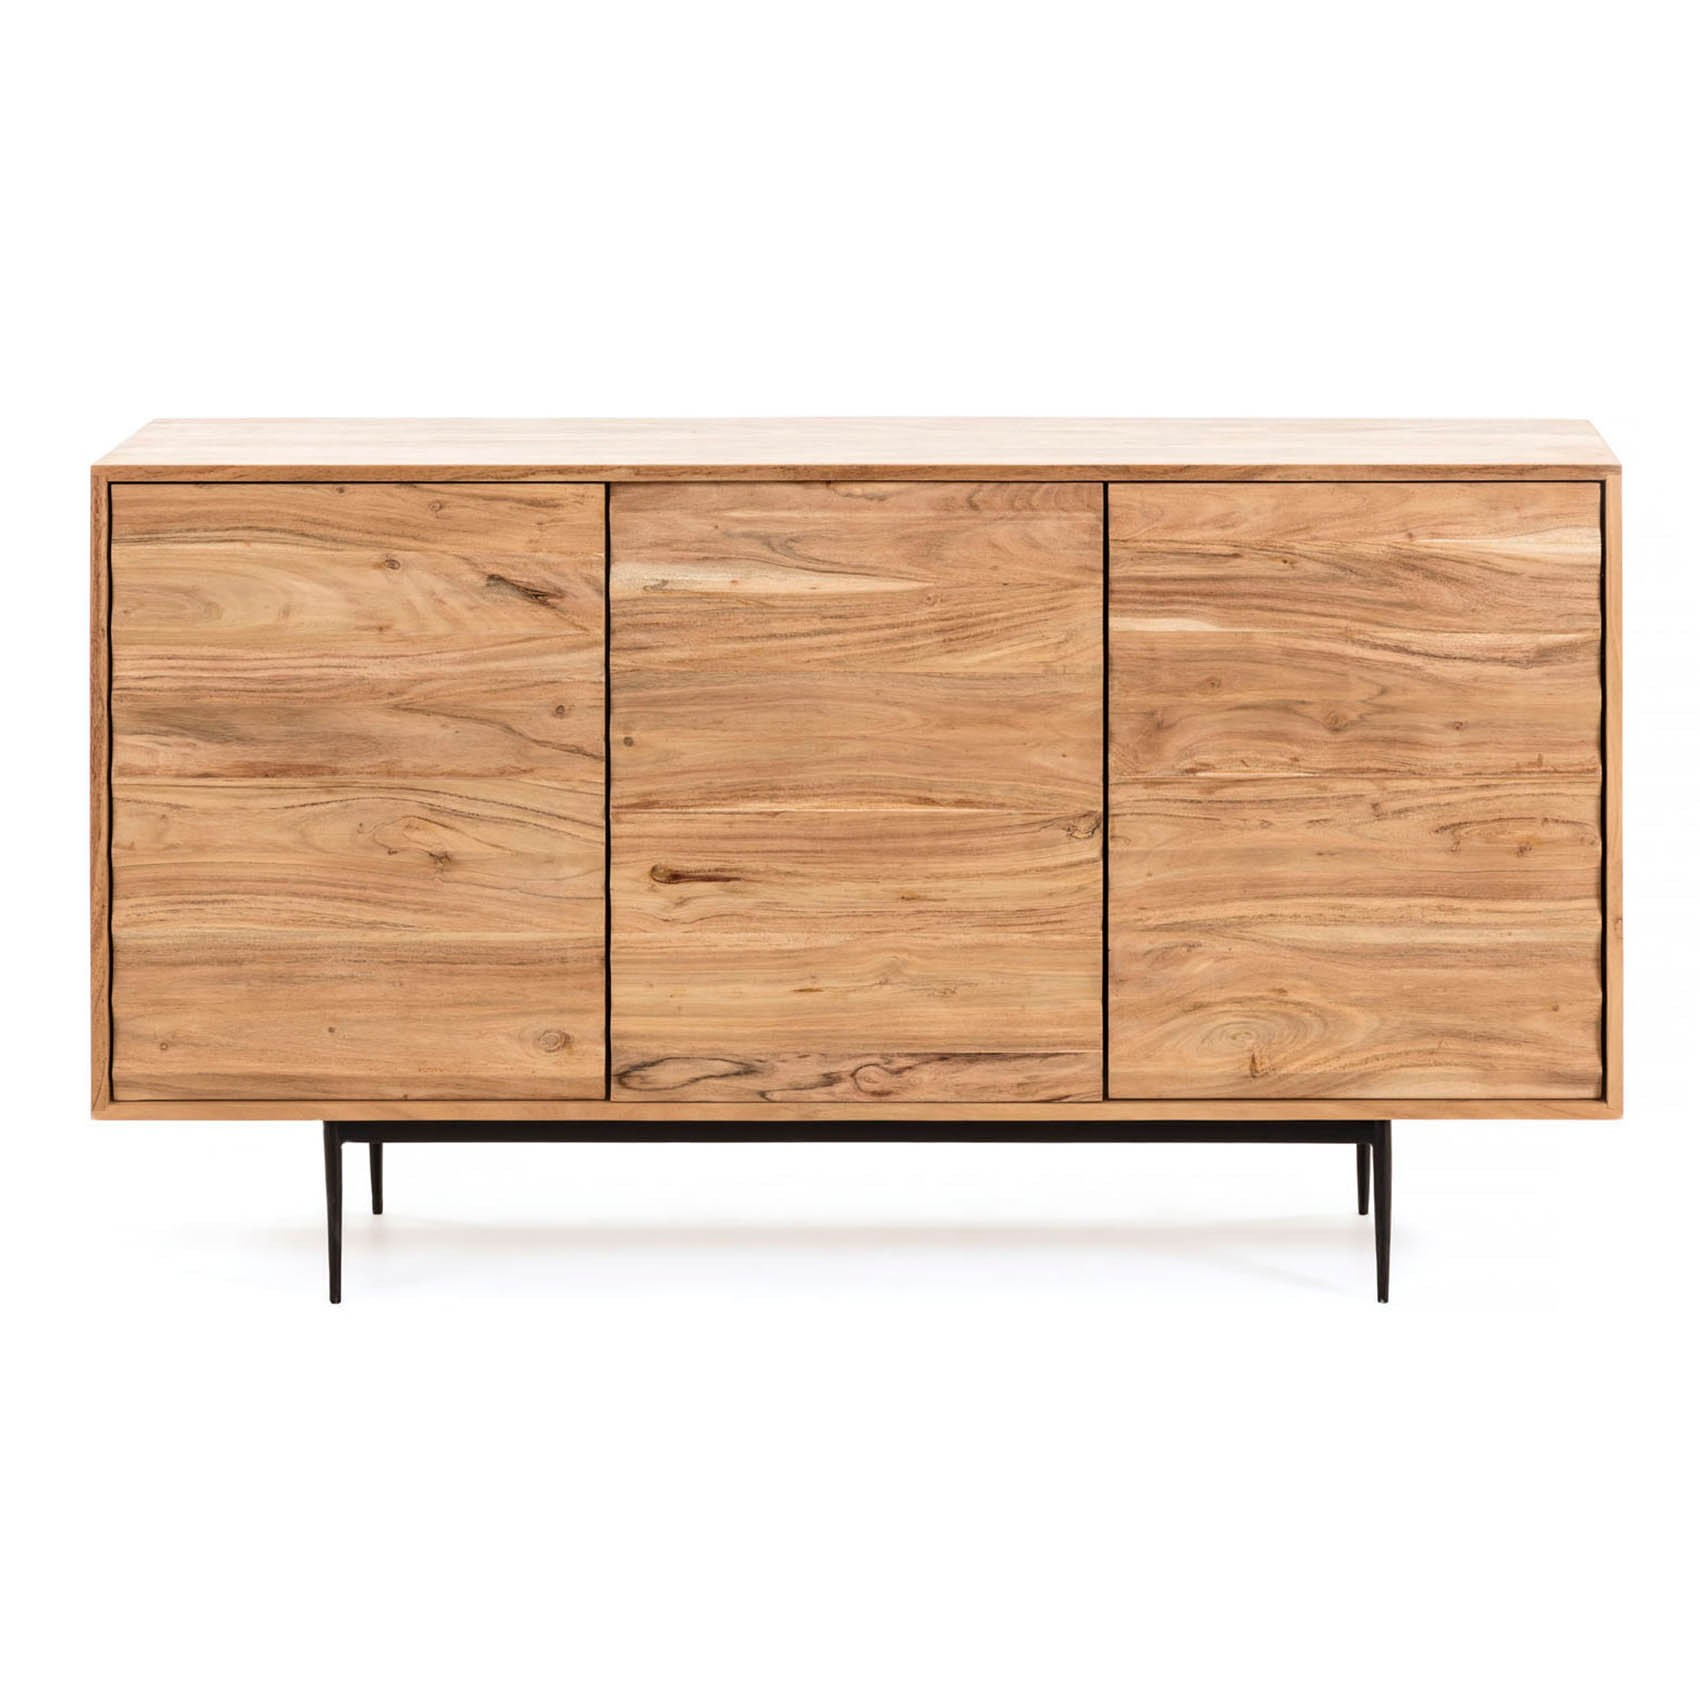 Duncan Handmade Acacia Timber 4 Door Sideboard, 147cm